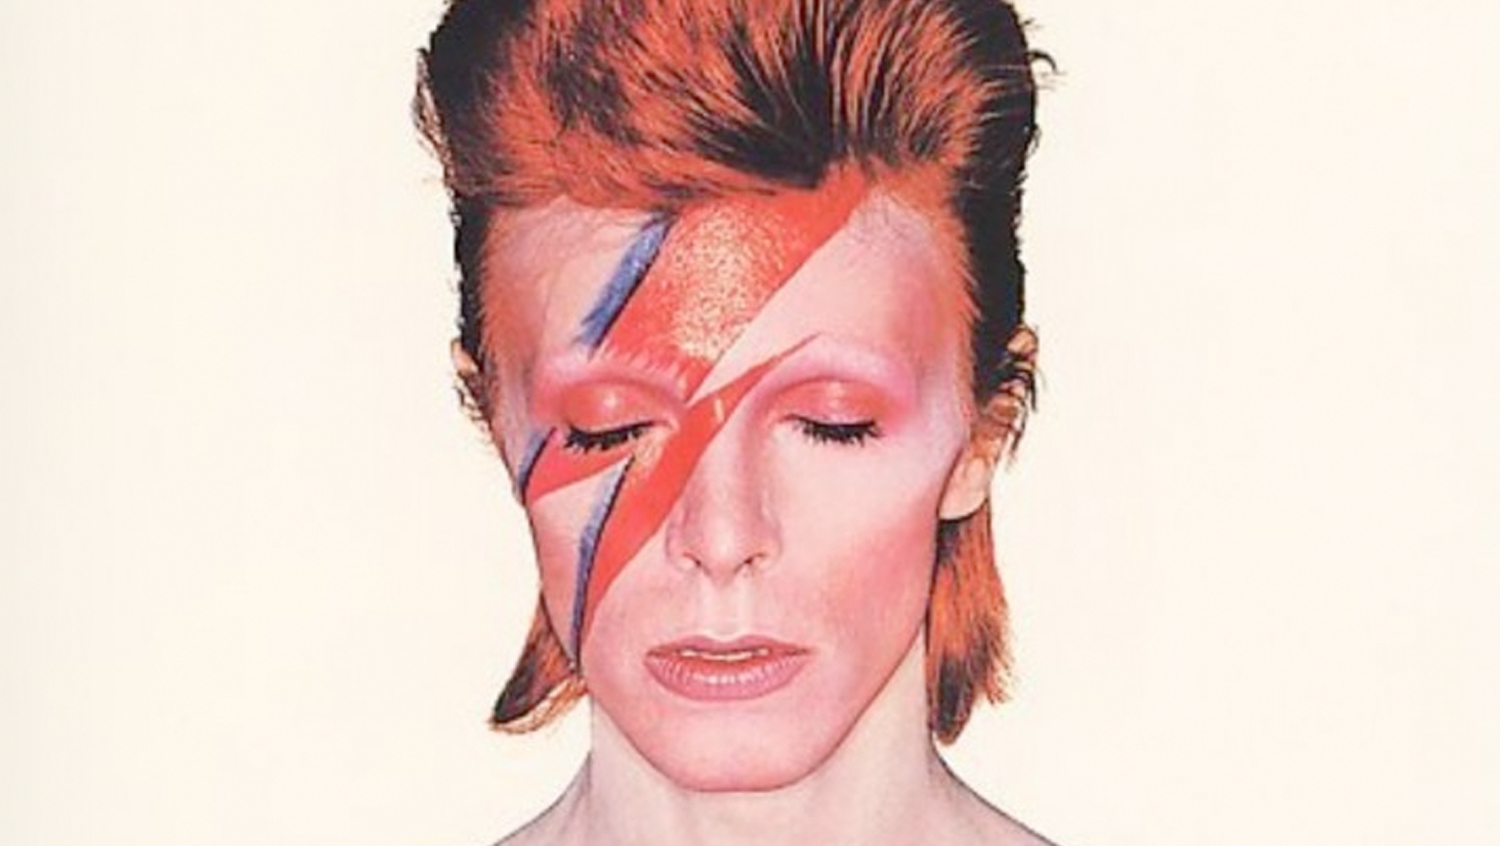 The Indianapolis Symphony Orchestra pays tribute to David Bowie on June 24-25. Photo: Creative Commons